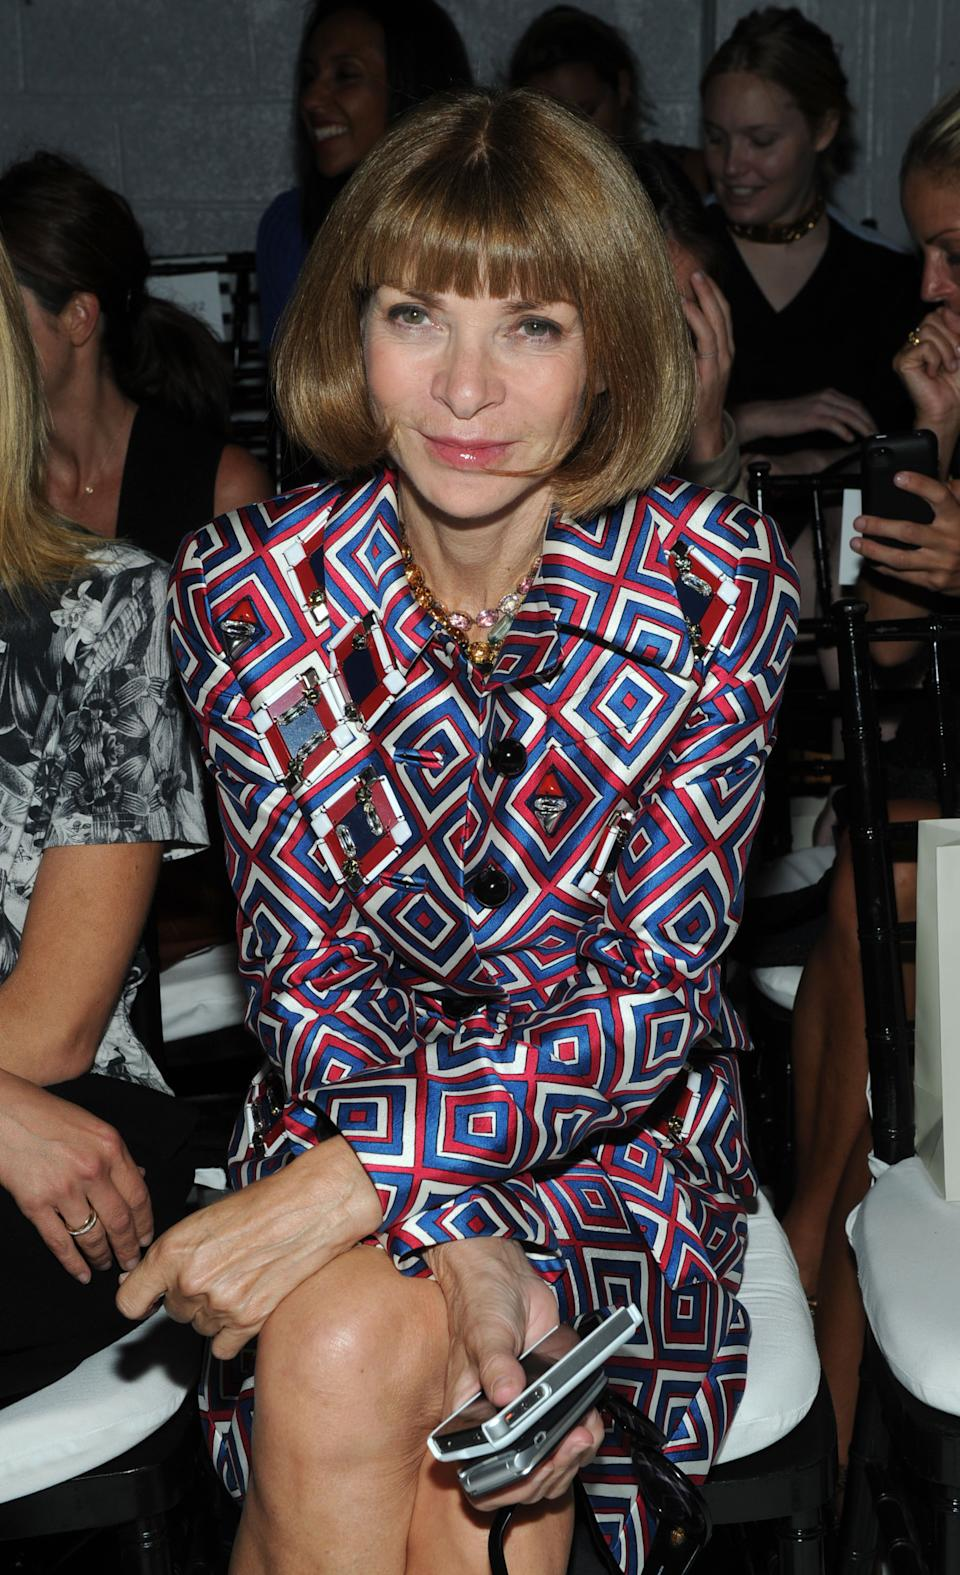 Anna Wintour attends the Jason Wu spring 2013 show, Friday, Sept. 7, 2012 in New York. (Photo by Diane Bondareff/Invision/AP)